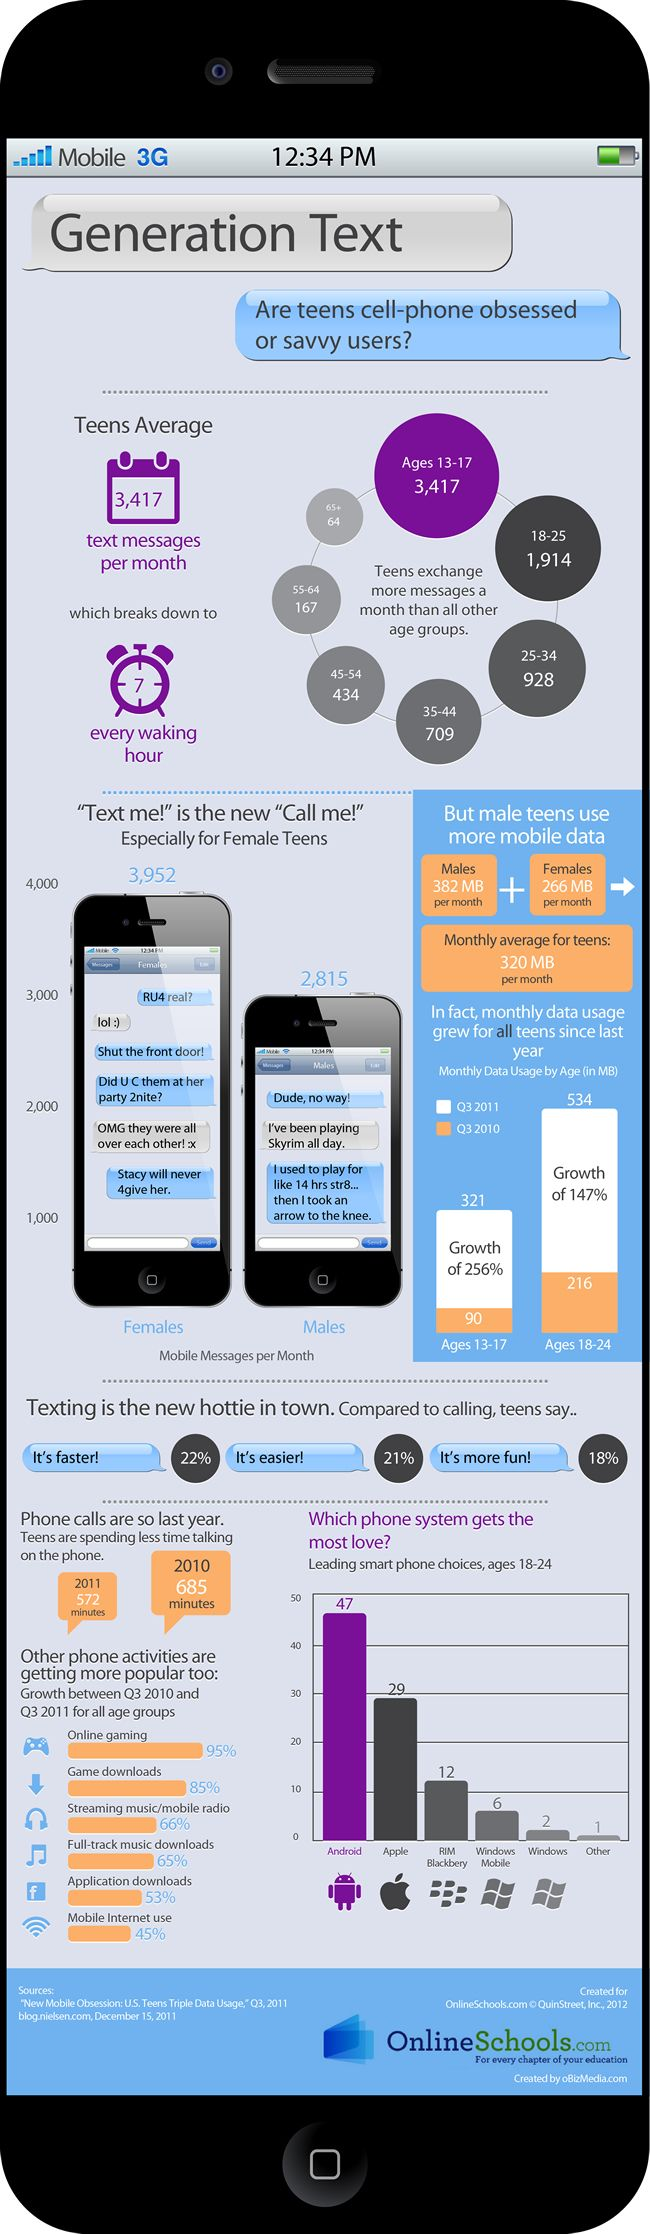 How often do teens text? A lot